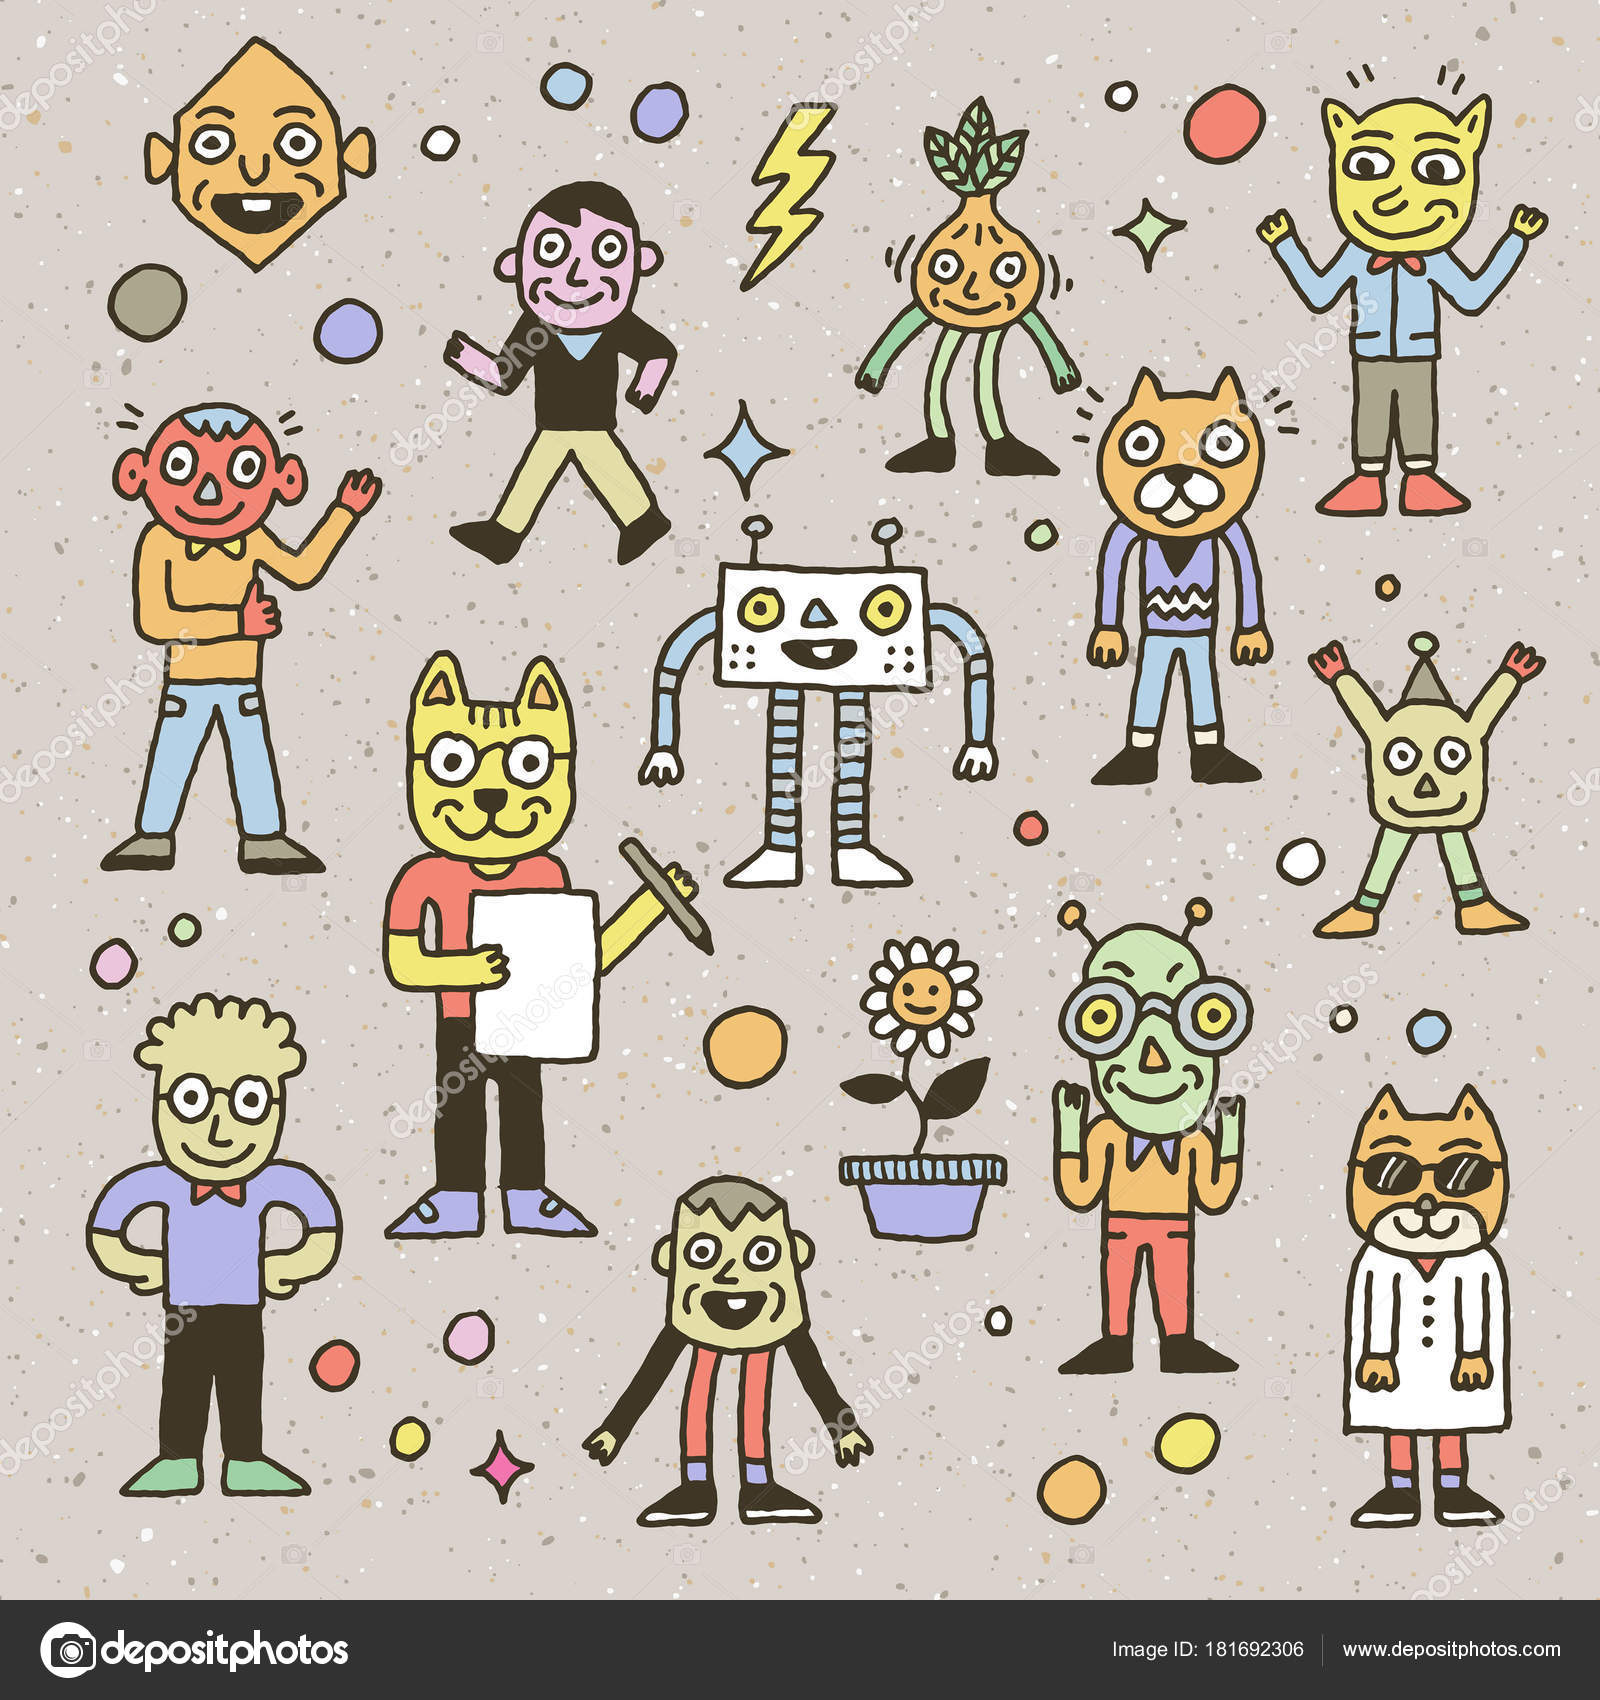 Wacky Funny Doodle Characters Outline Vector Illustrations — Stock